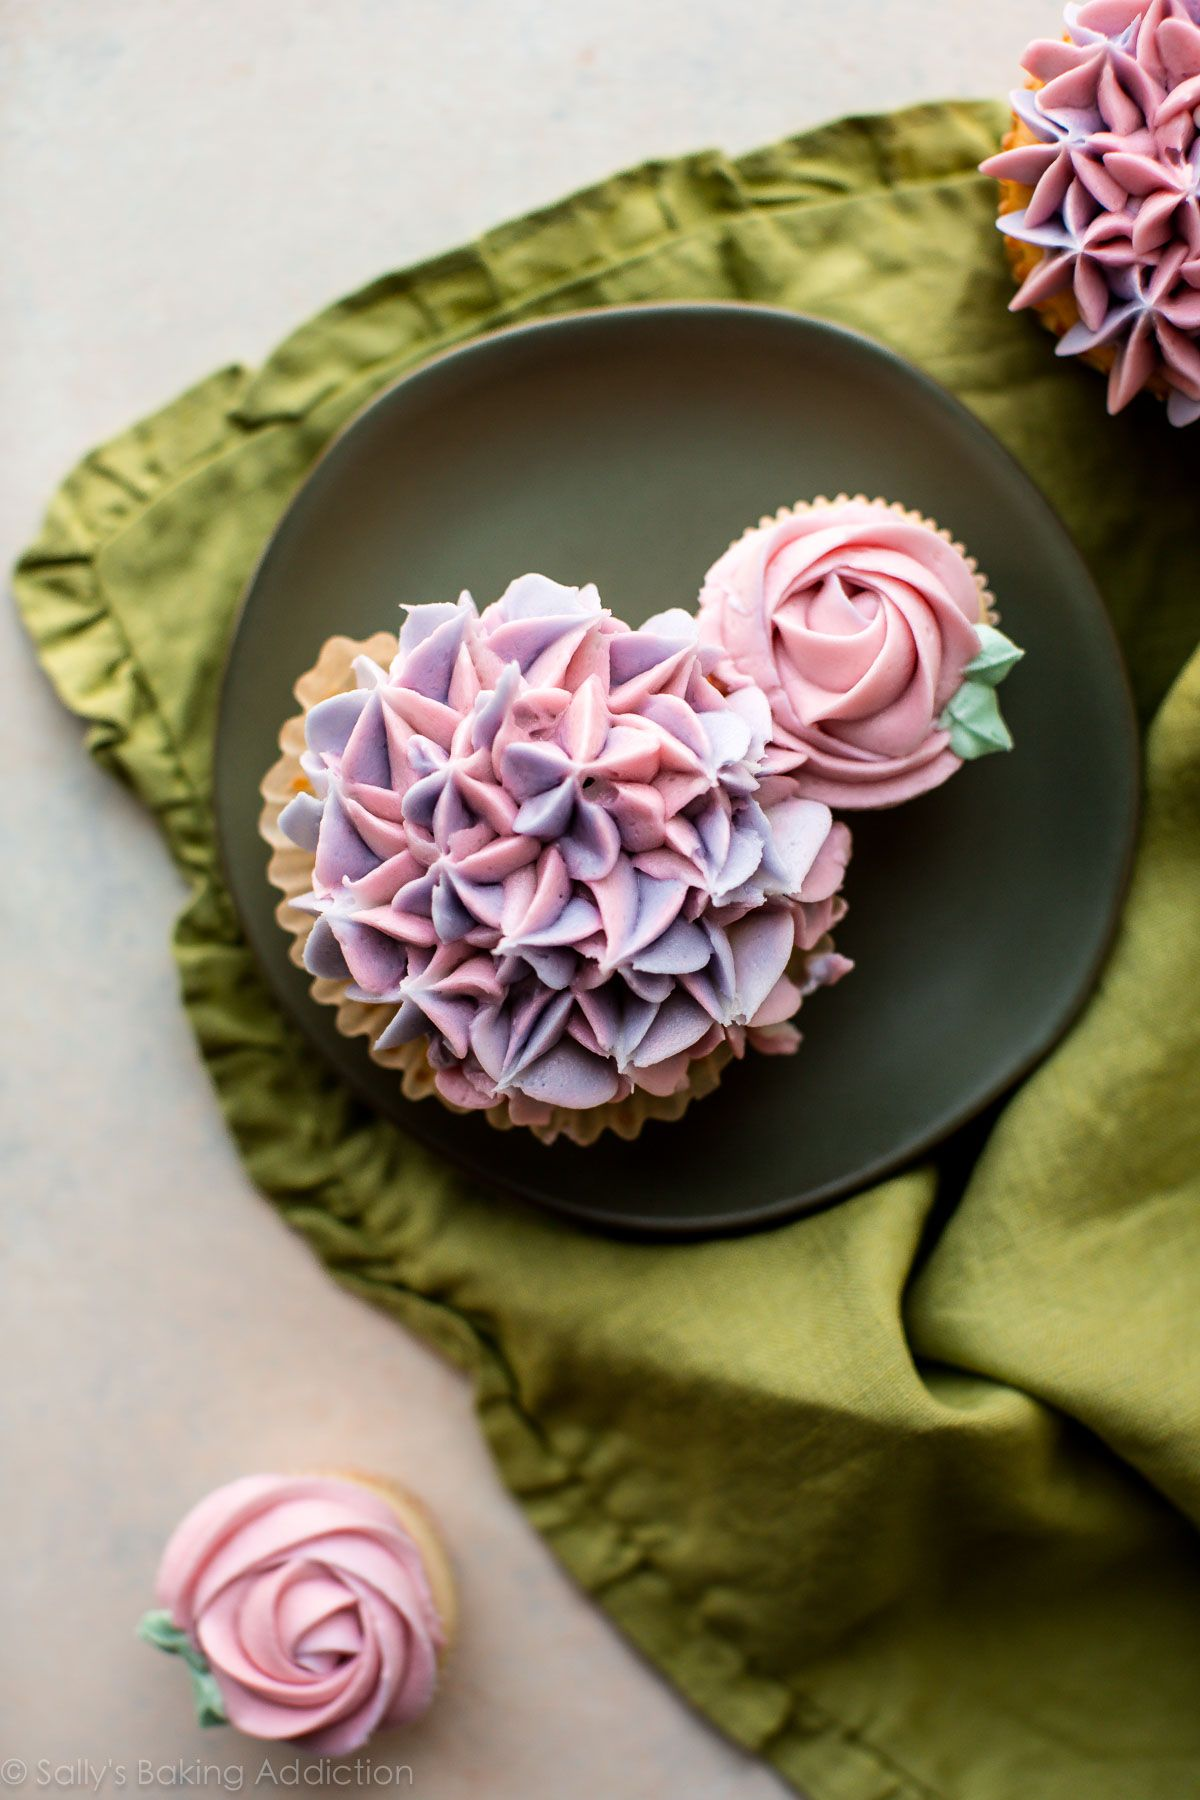 How To Make A Cupcake Bouquet With Decorated Rose Cupcakes And Hydrangea Cupcakes Video Tutorial Cupcake Bouquet Flower Cupcakes Cupcake Decorating Techniques